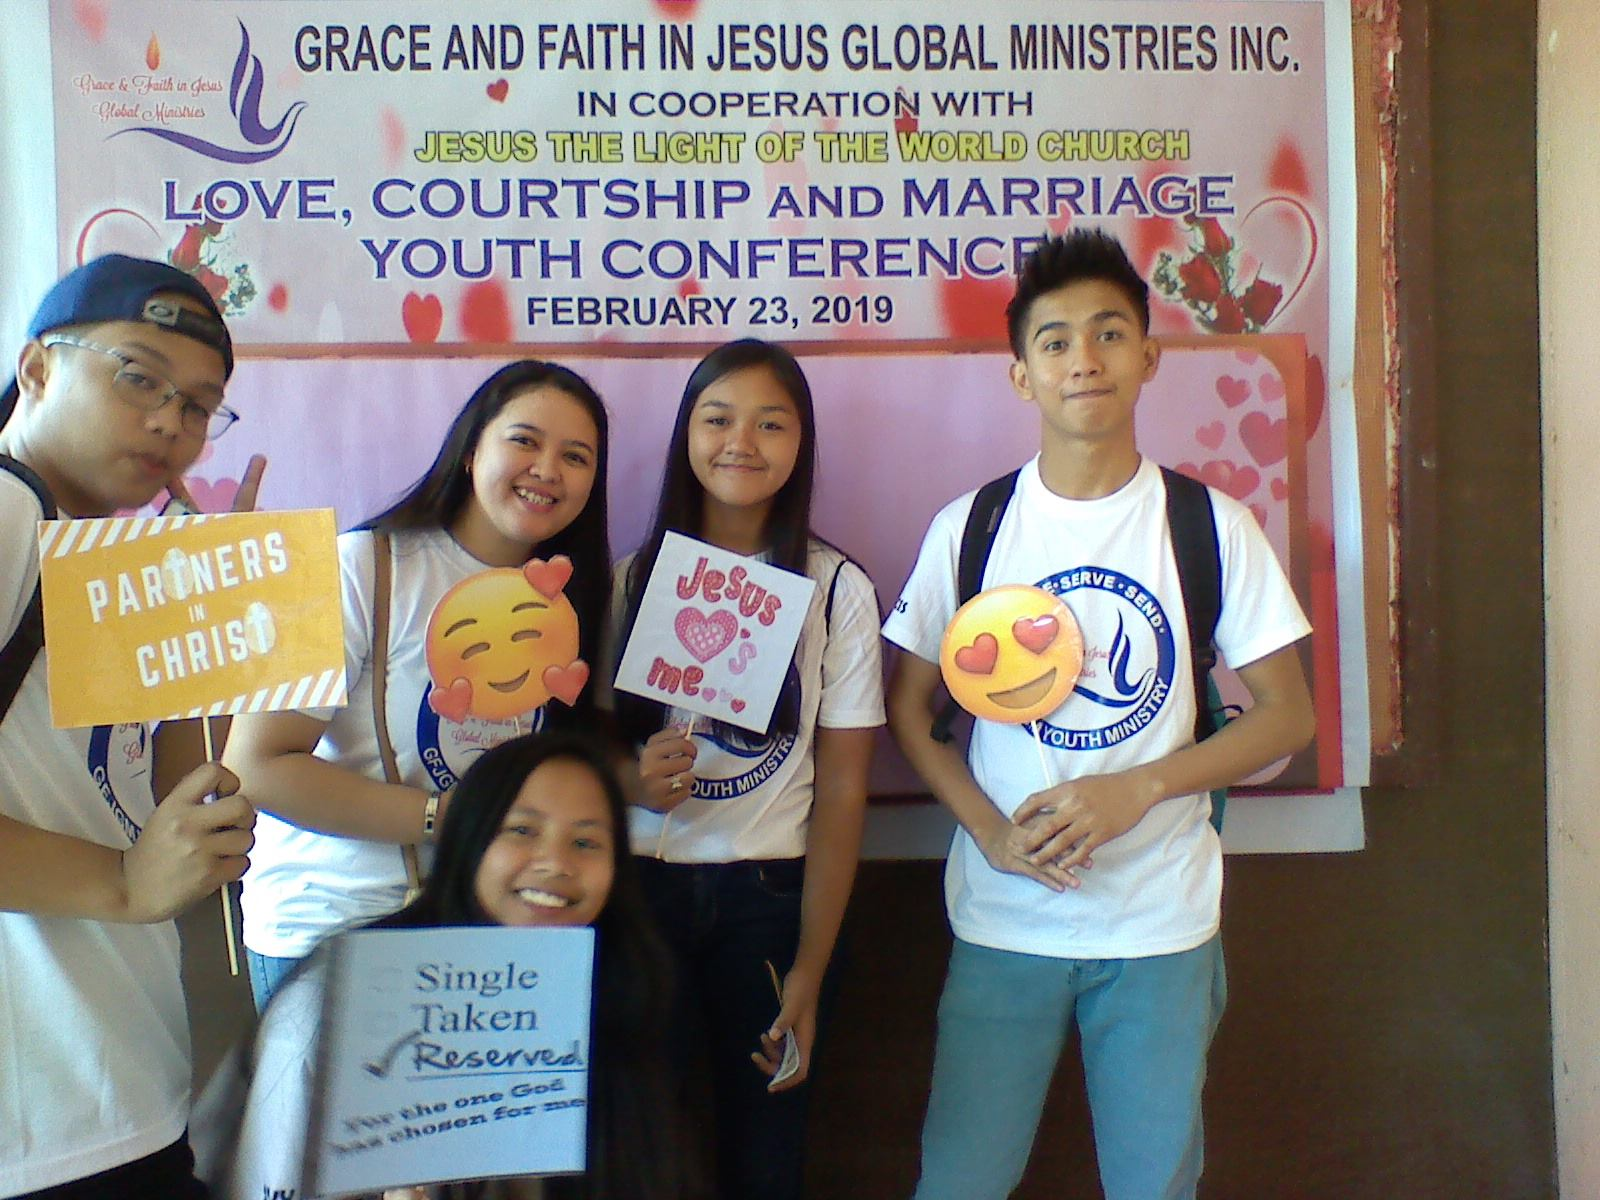 Grace and Faith in Jesus Global Ministries, Inc.